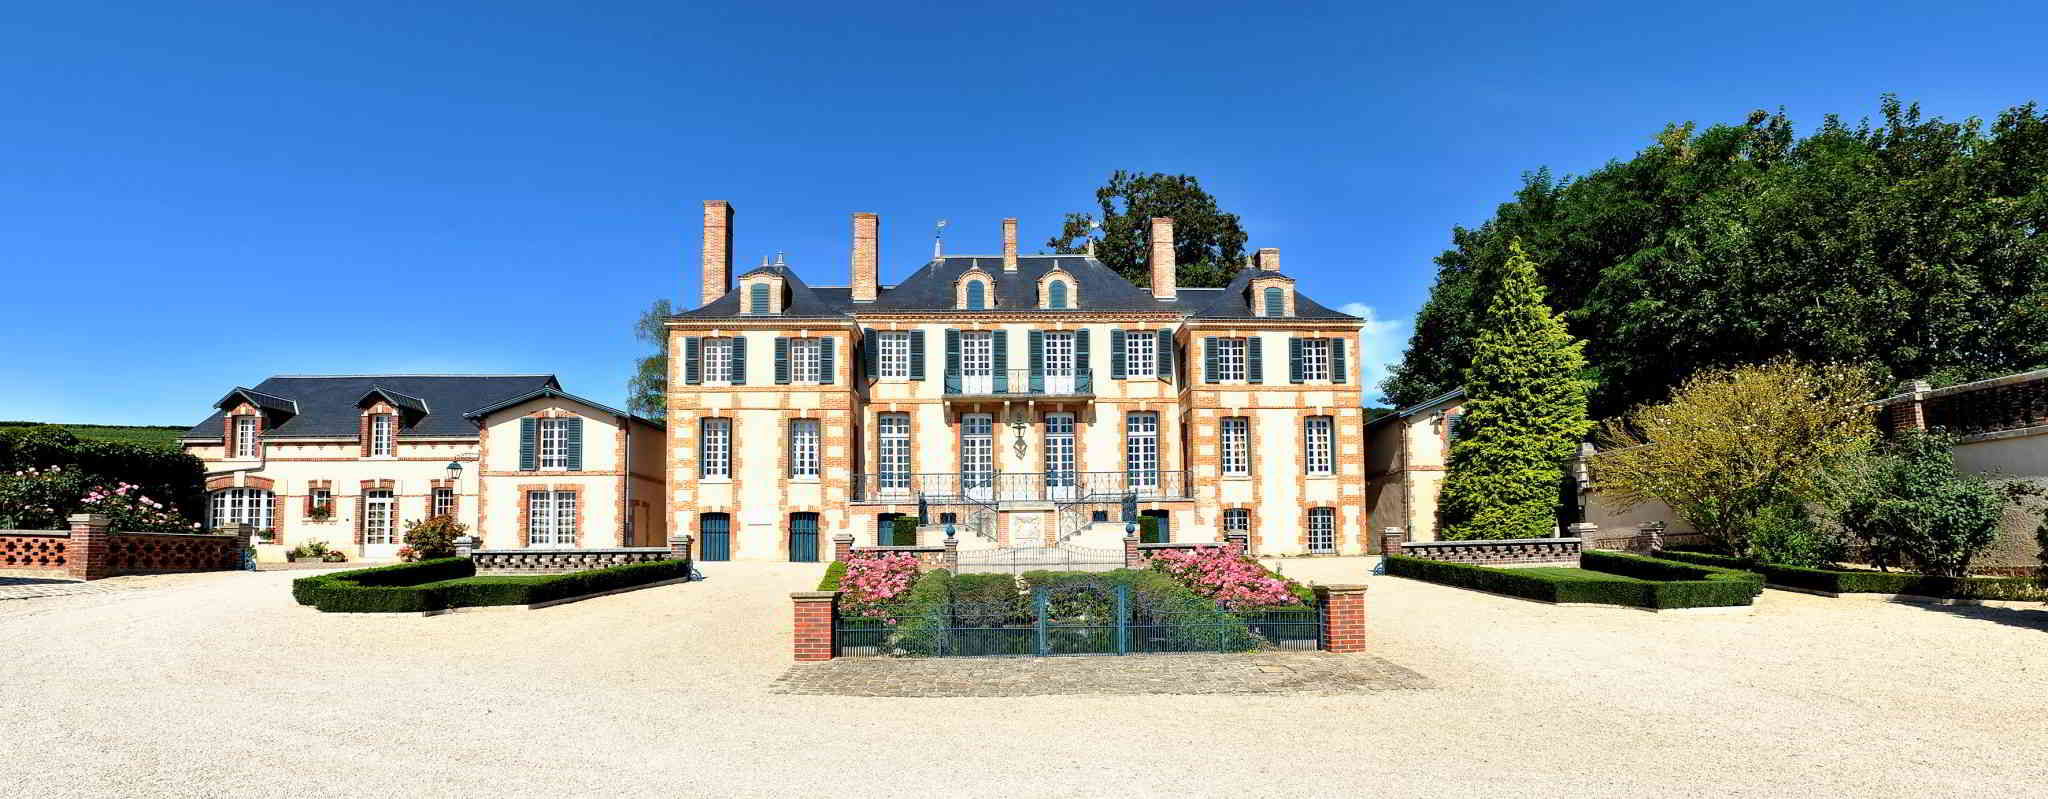 10 Reasons to Visit France in 2018